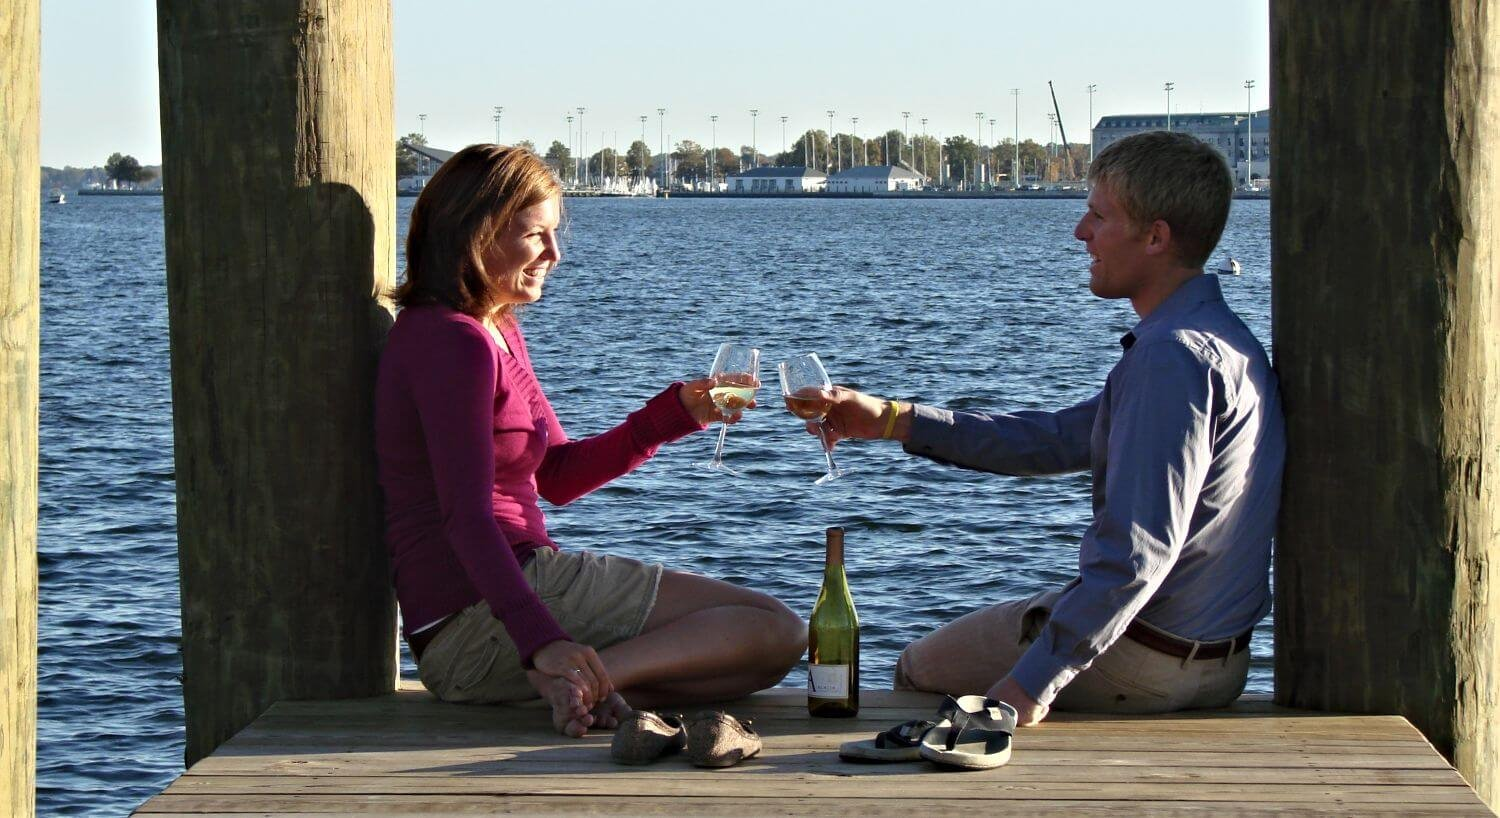 Man and woman toasting with champagen glasses on a dock